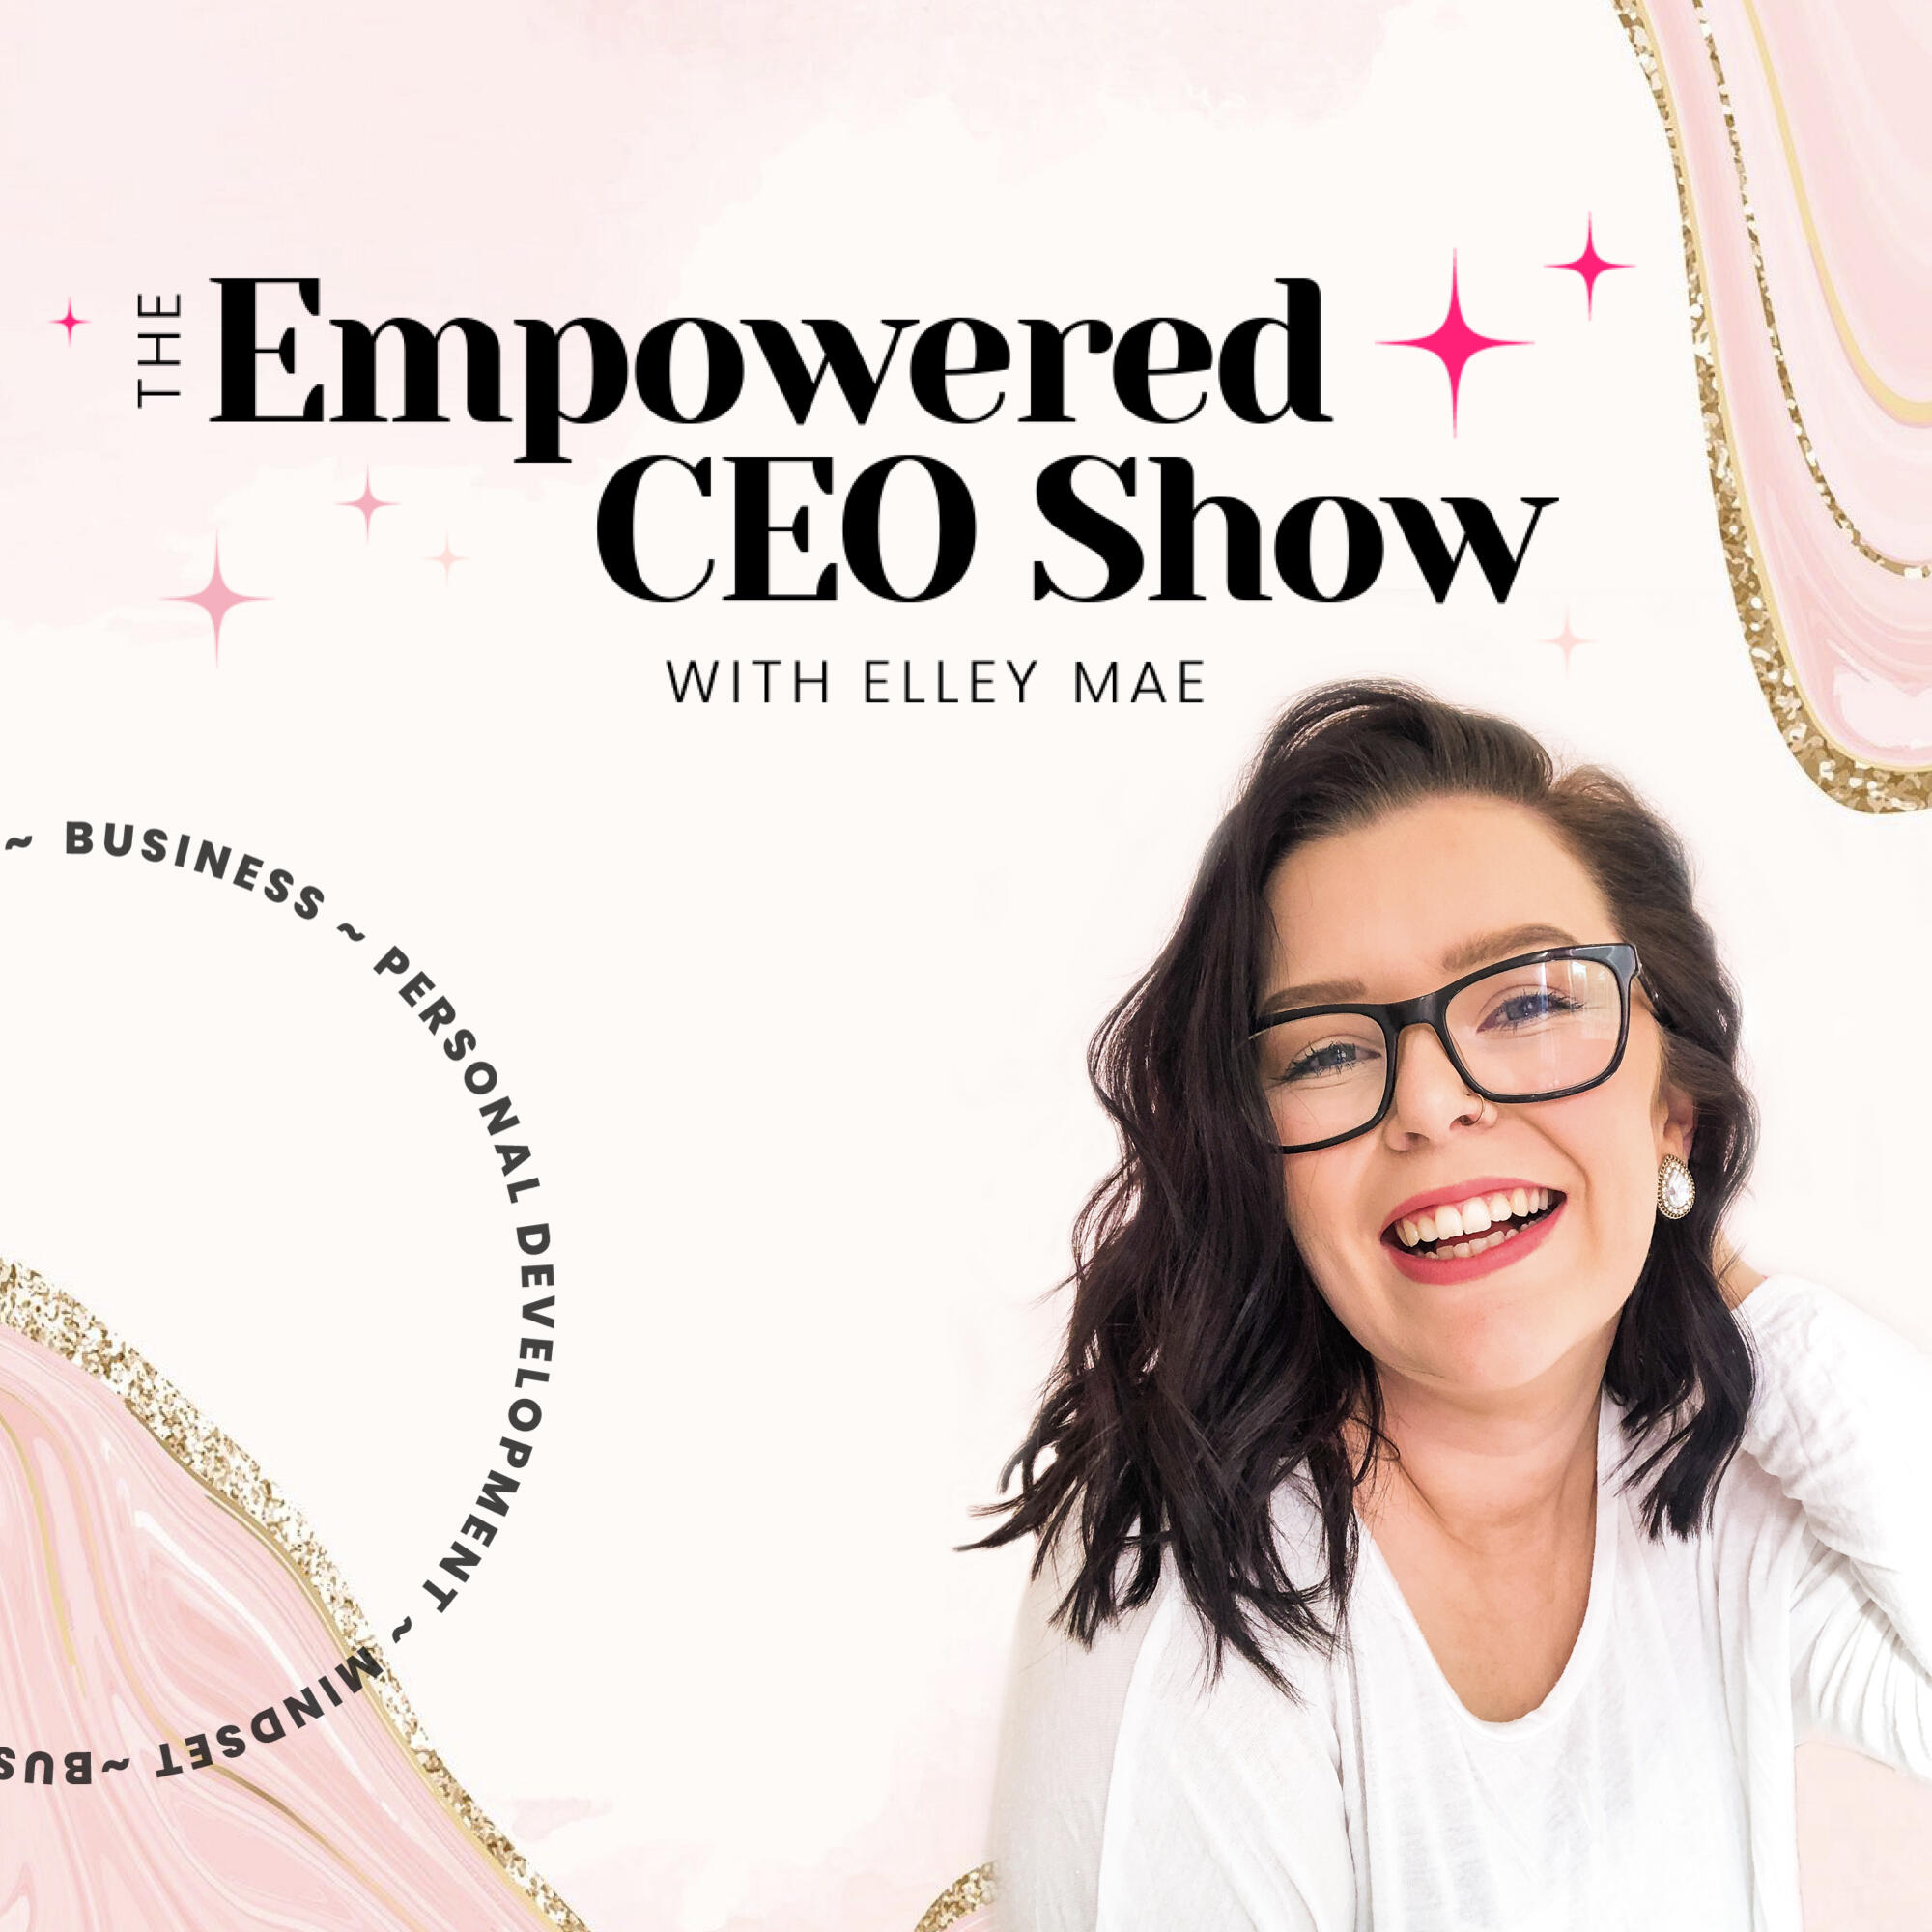 The Empowered CEO Show